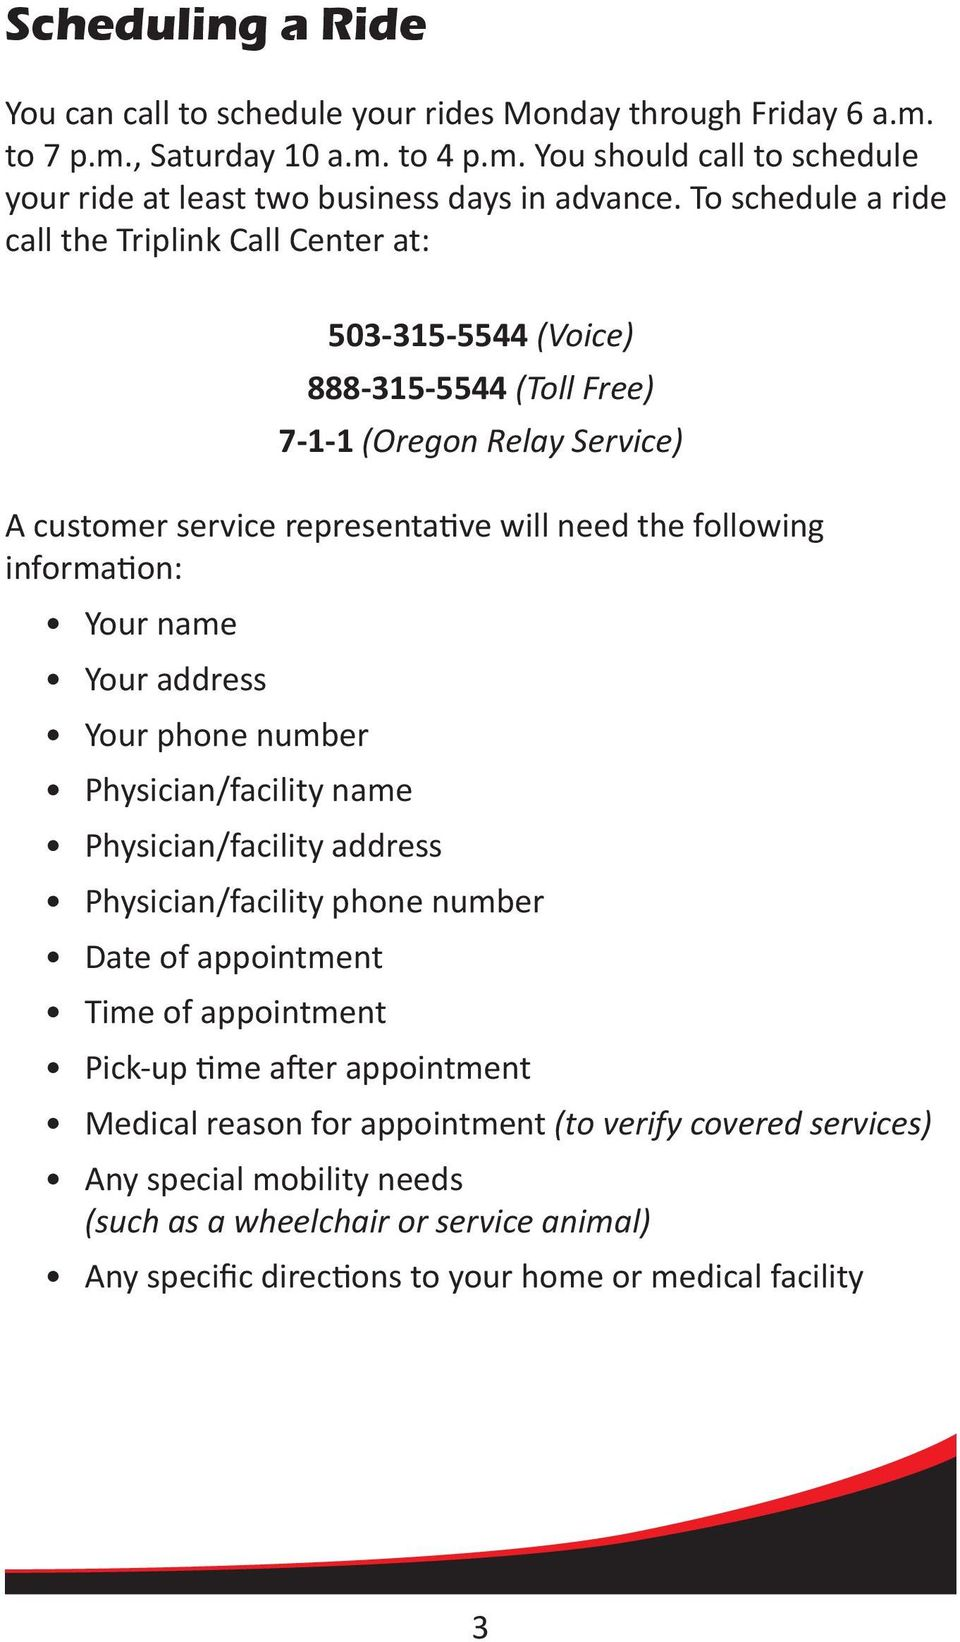 information: Your name Your address Your phone number Physician/facility name Physician/facility address Physician/facility phone number Date of appointment Time of appointment Pick-up time